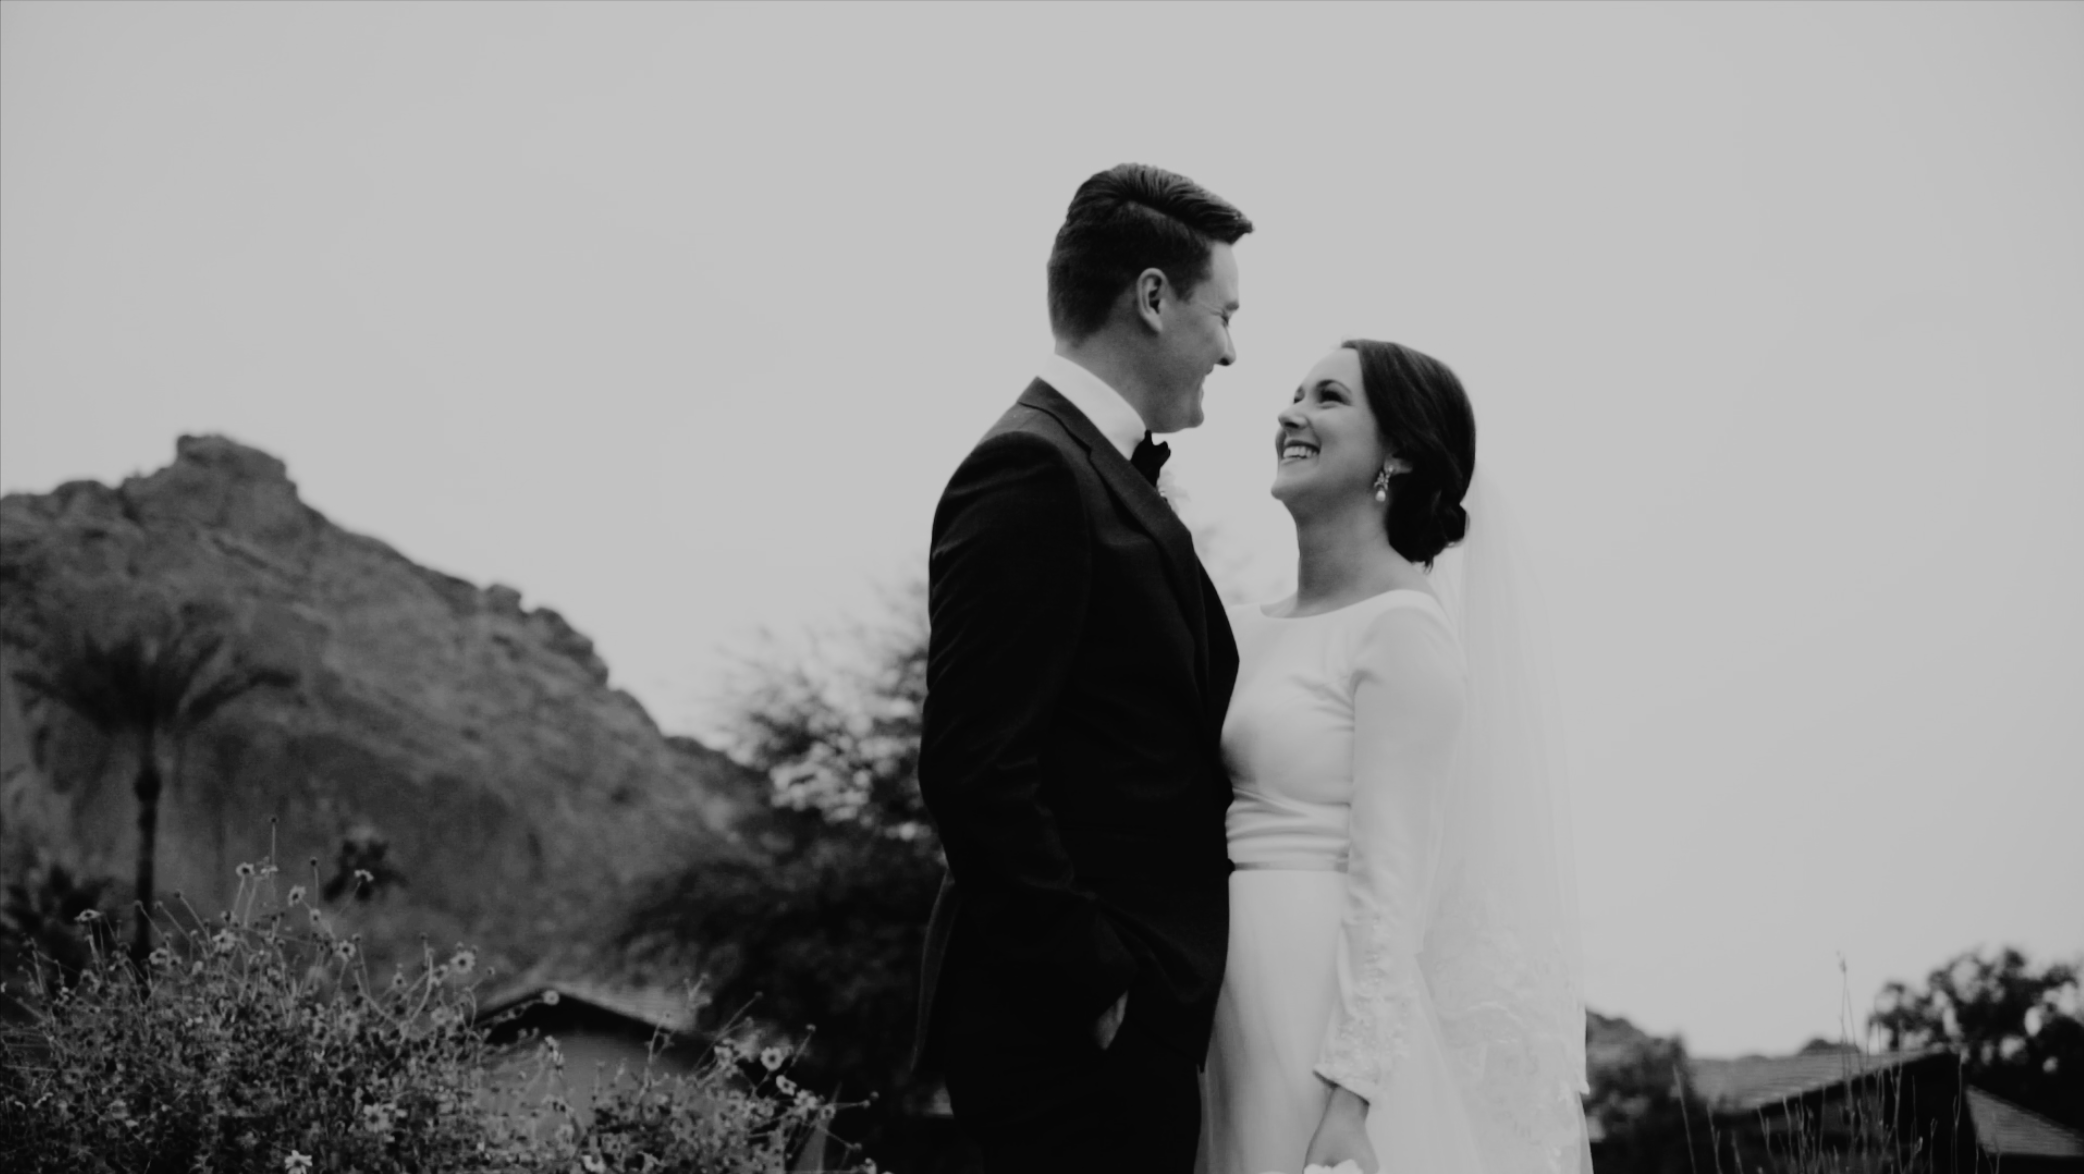 Maggie & andrew - A new years wedding at the charming Mountain Shadows resort in Paradise Valley, Arizona